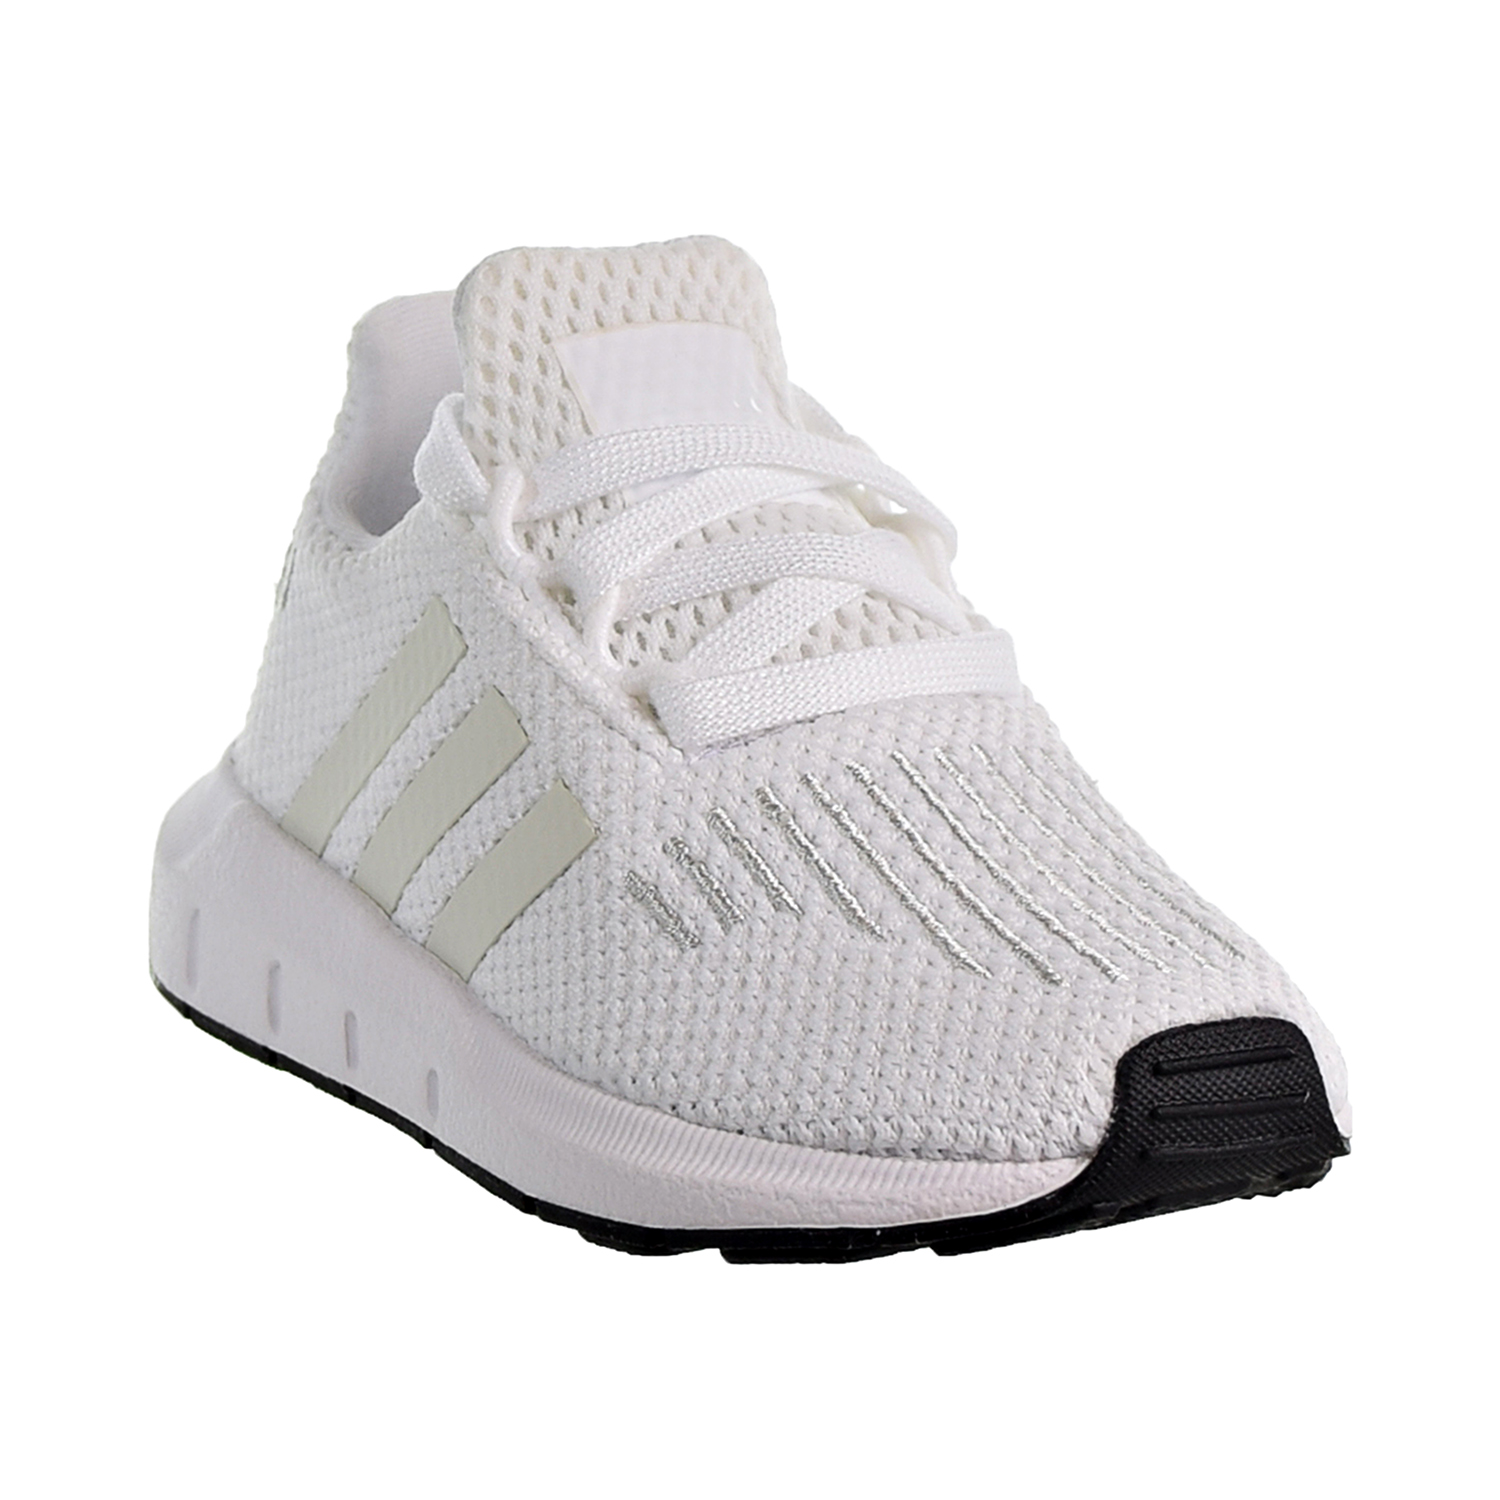 2ad9b93a5 Adidas Swift Run Toddler s Shoes Cloud White Crystal White Core Black cp9462